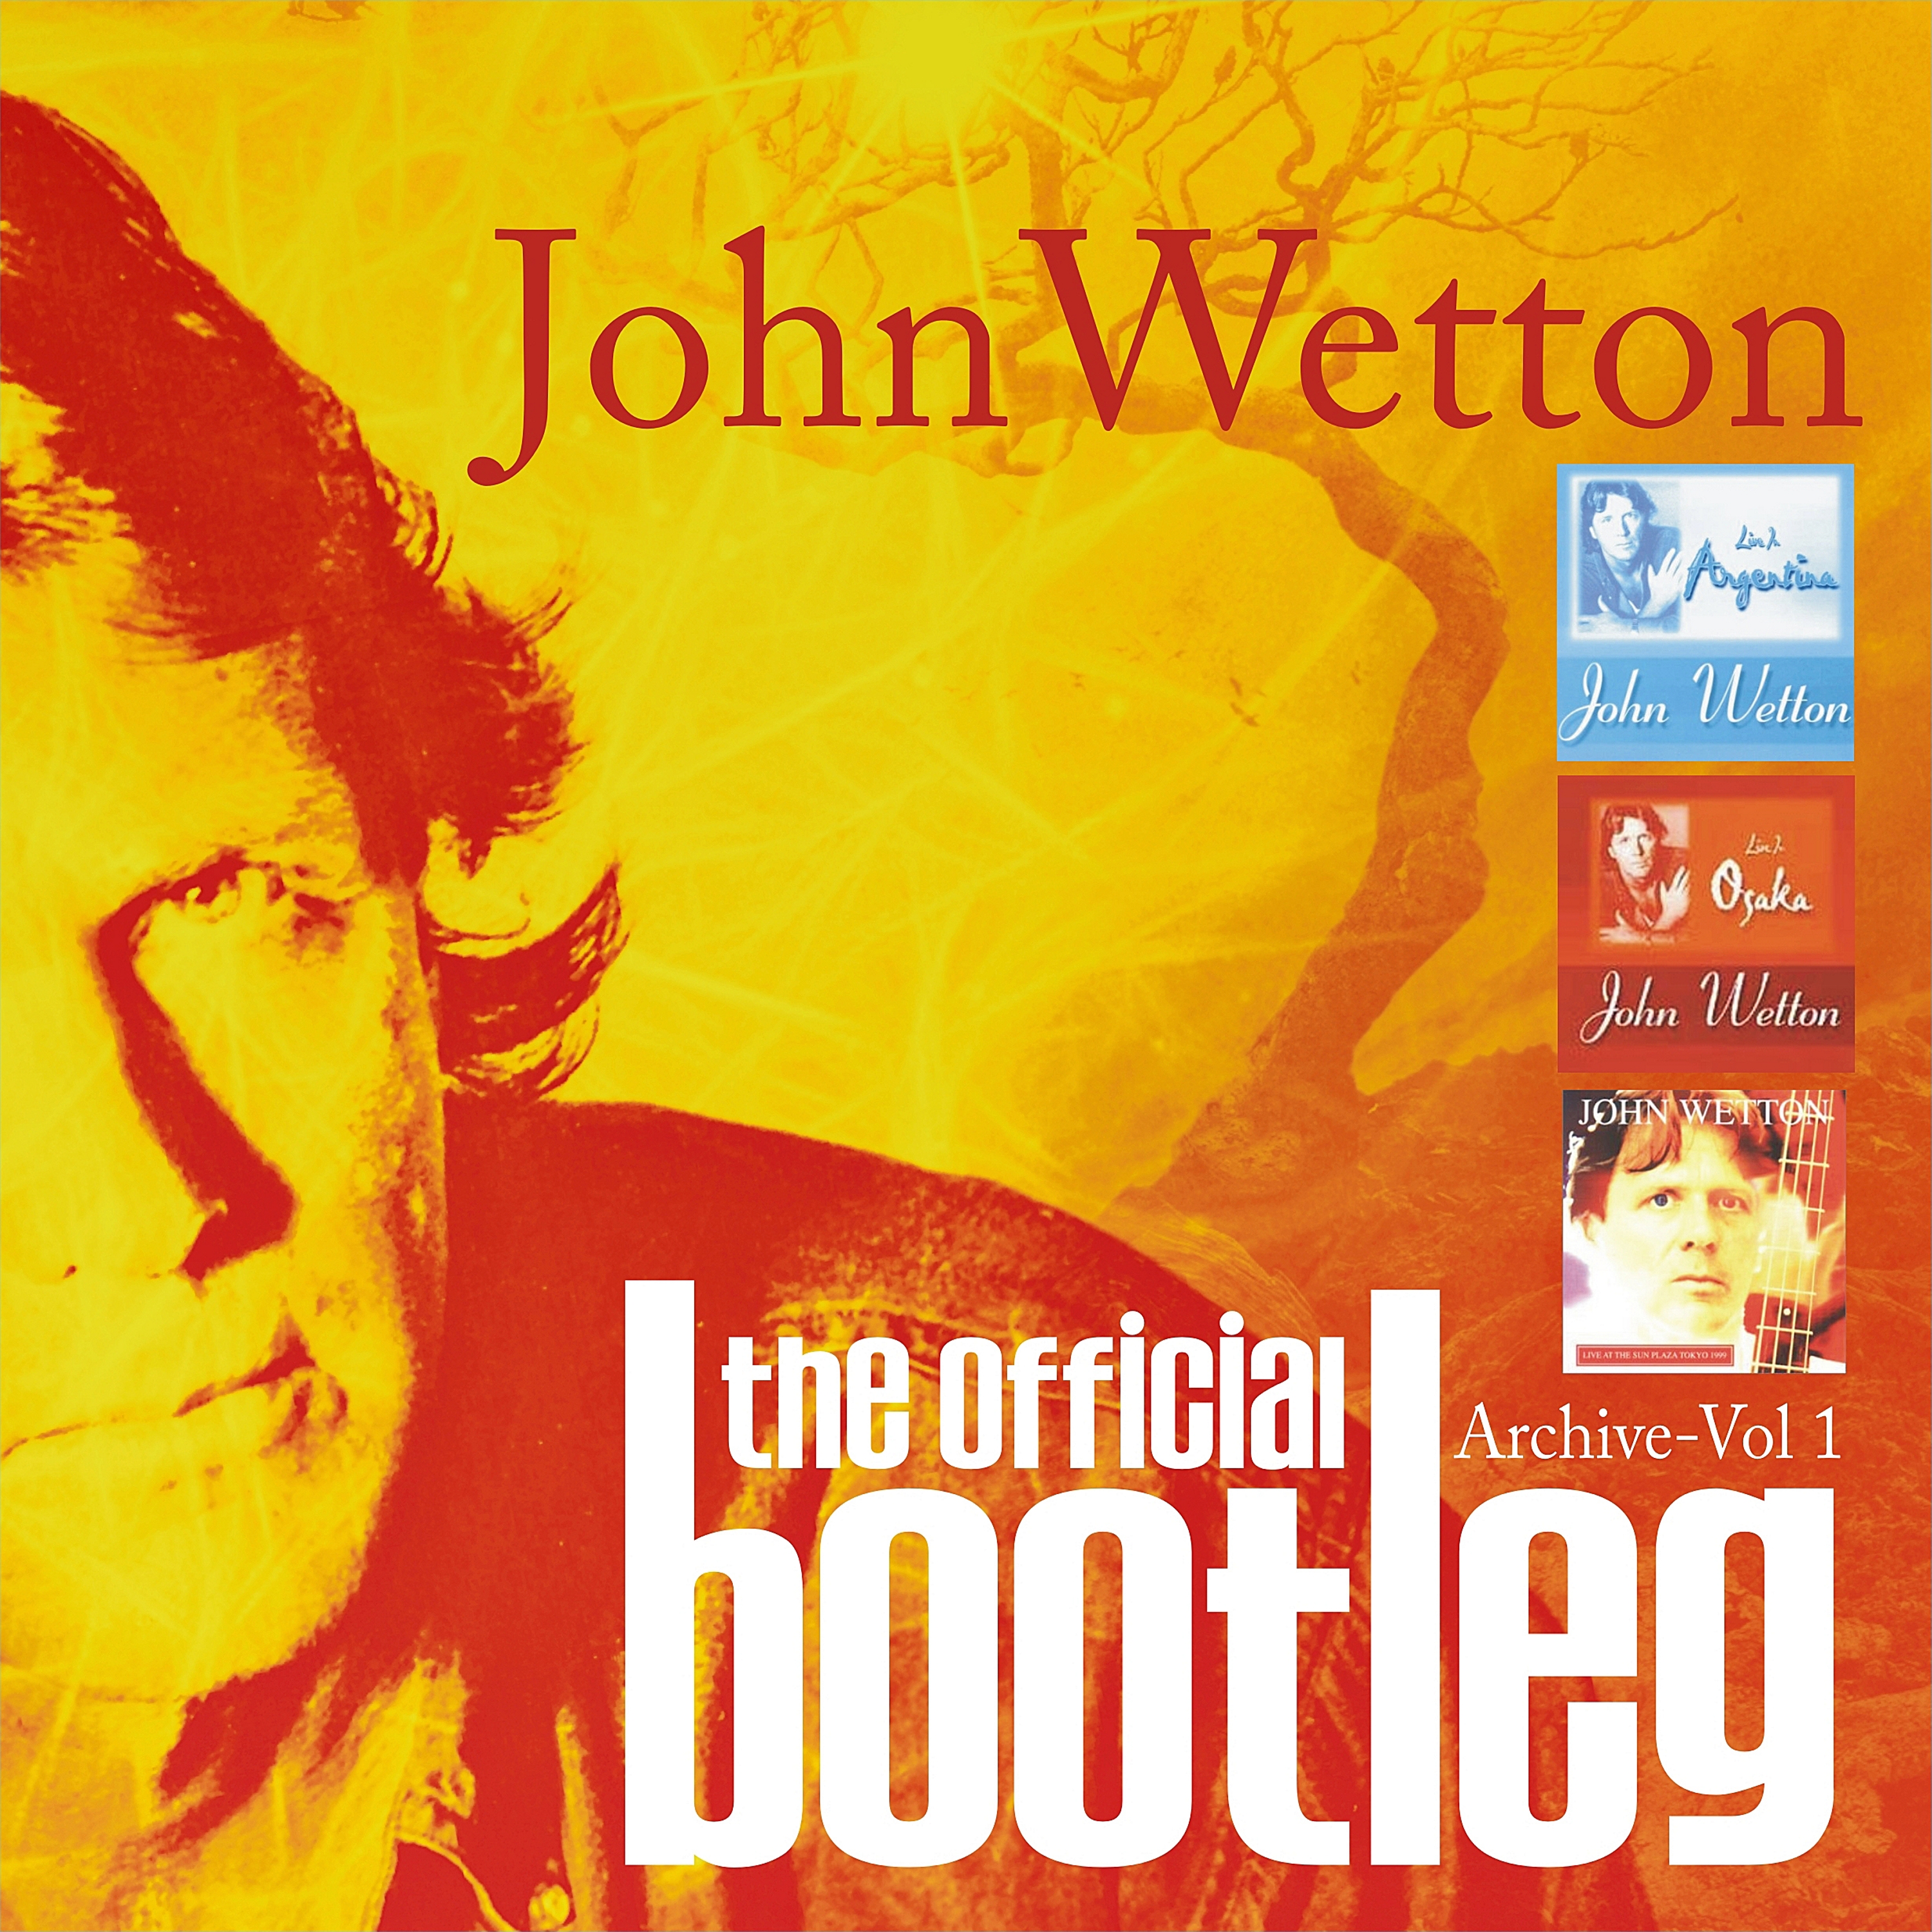 Wetton's Official Bootleg Reboot